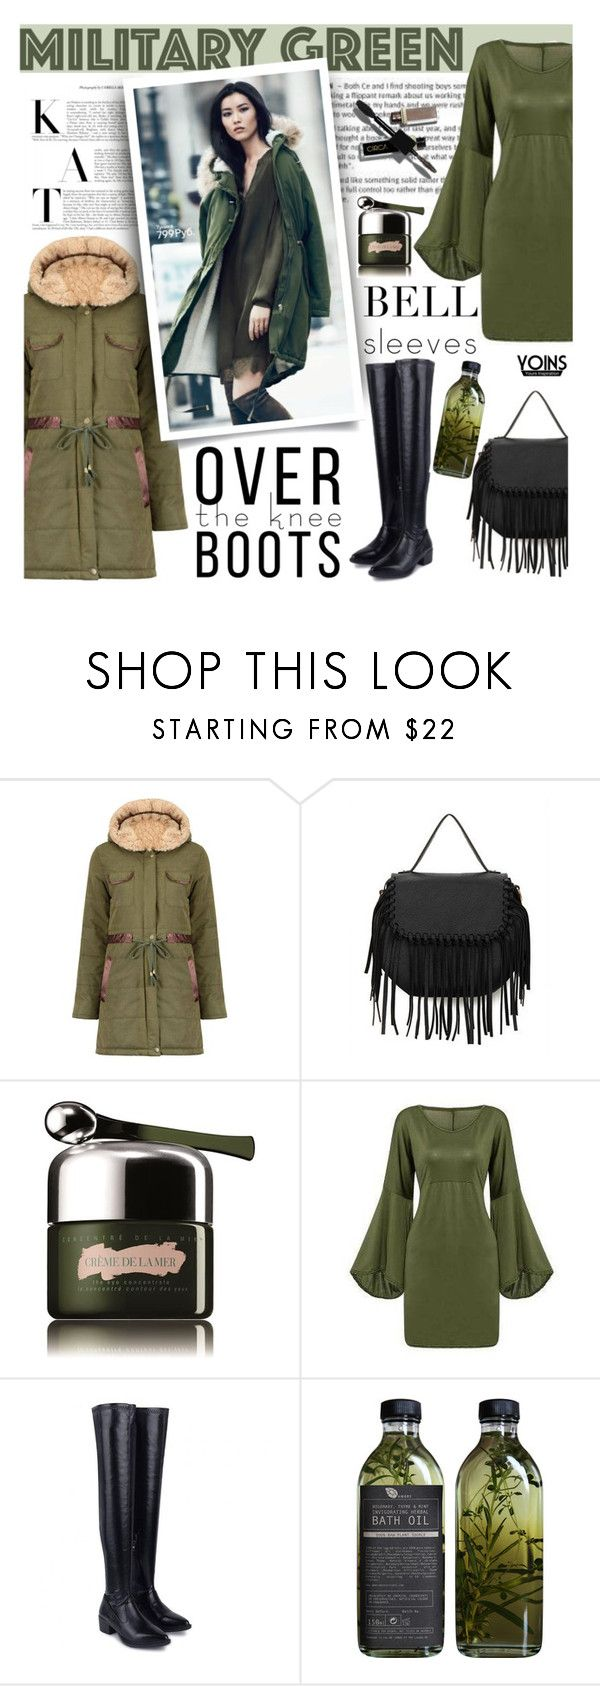 """Fall Footwear: Over-The-Knee Boots - Yonis"" by lacas ❤ liked on Polyvore featuring La Mer, H&M, AMBRE, Boots, OverTheKneeBoots and bellsleeves"